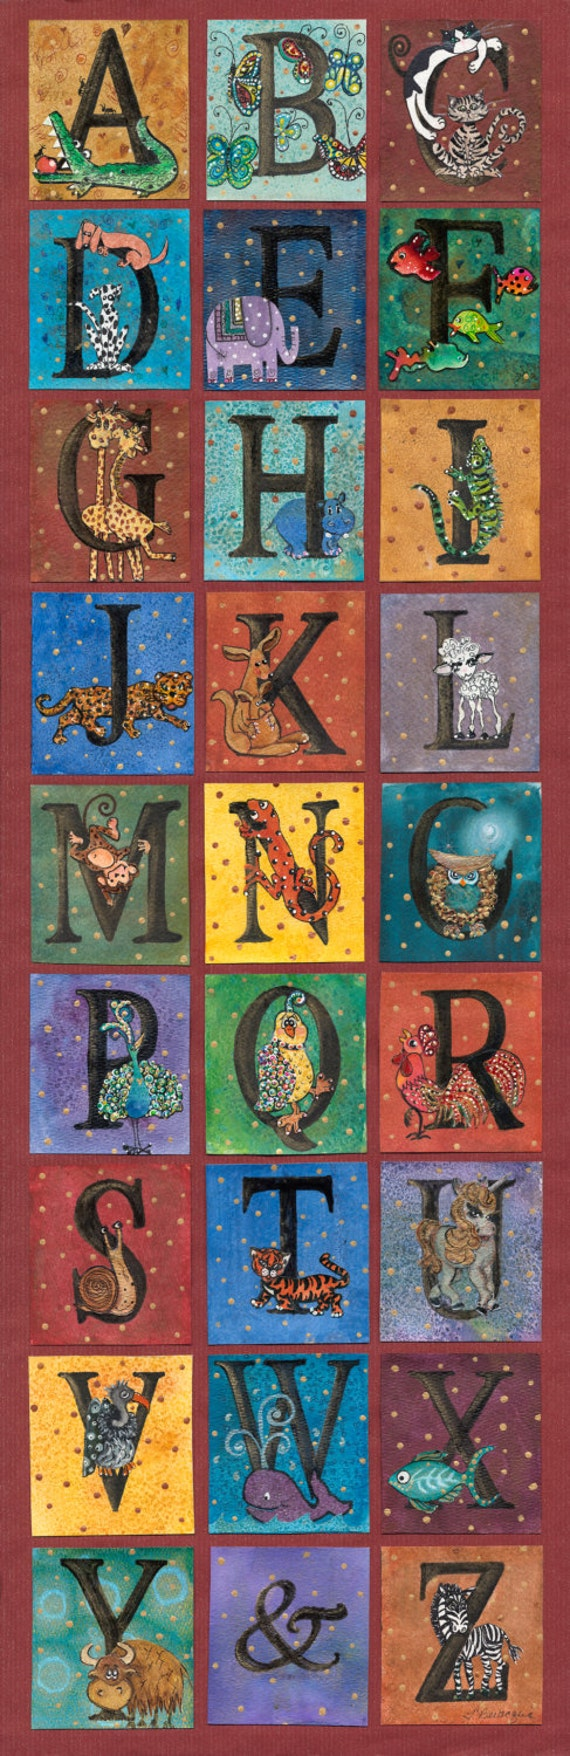 "12x36"" Giclee Print Whimsical Animal Alphabet - Gender Neutral ABC Artwork for the Nursery"